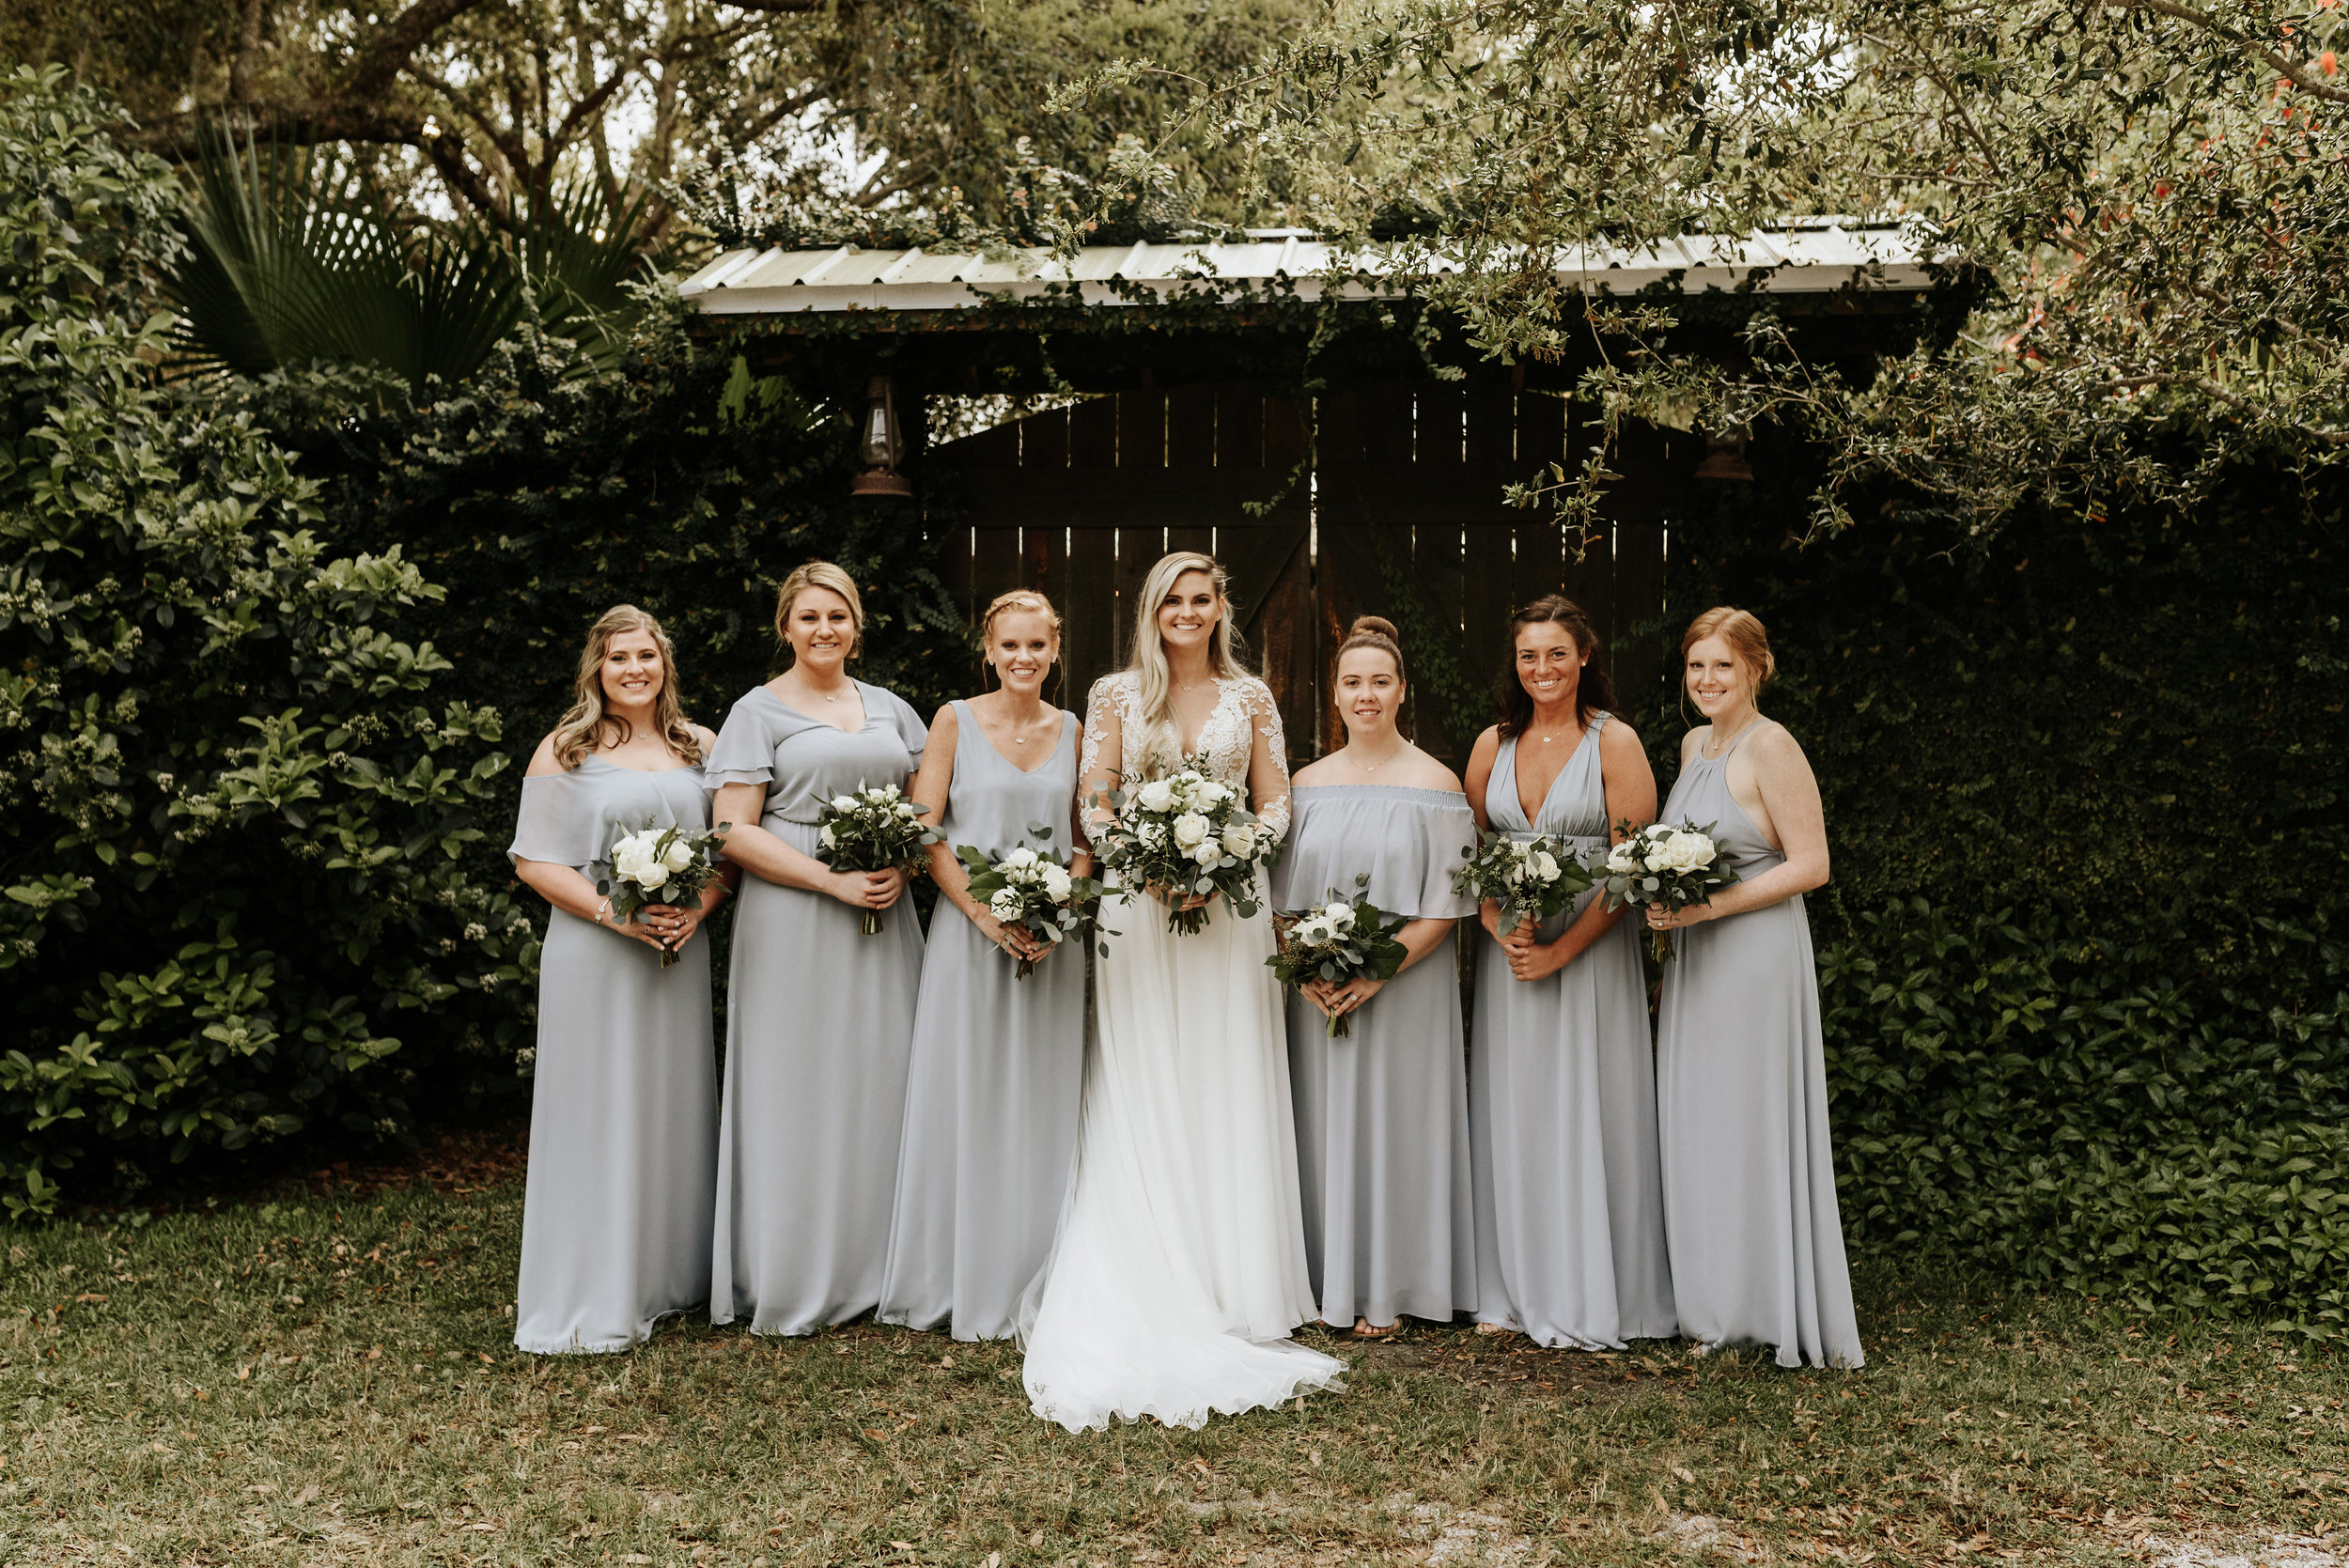 Mikenzi_Brad_Wedding_The_Delamater_House_New_Smyrna_Beach_Florida_Photography_by_V_0522.jpg